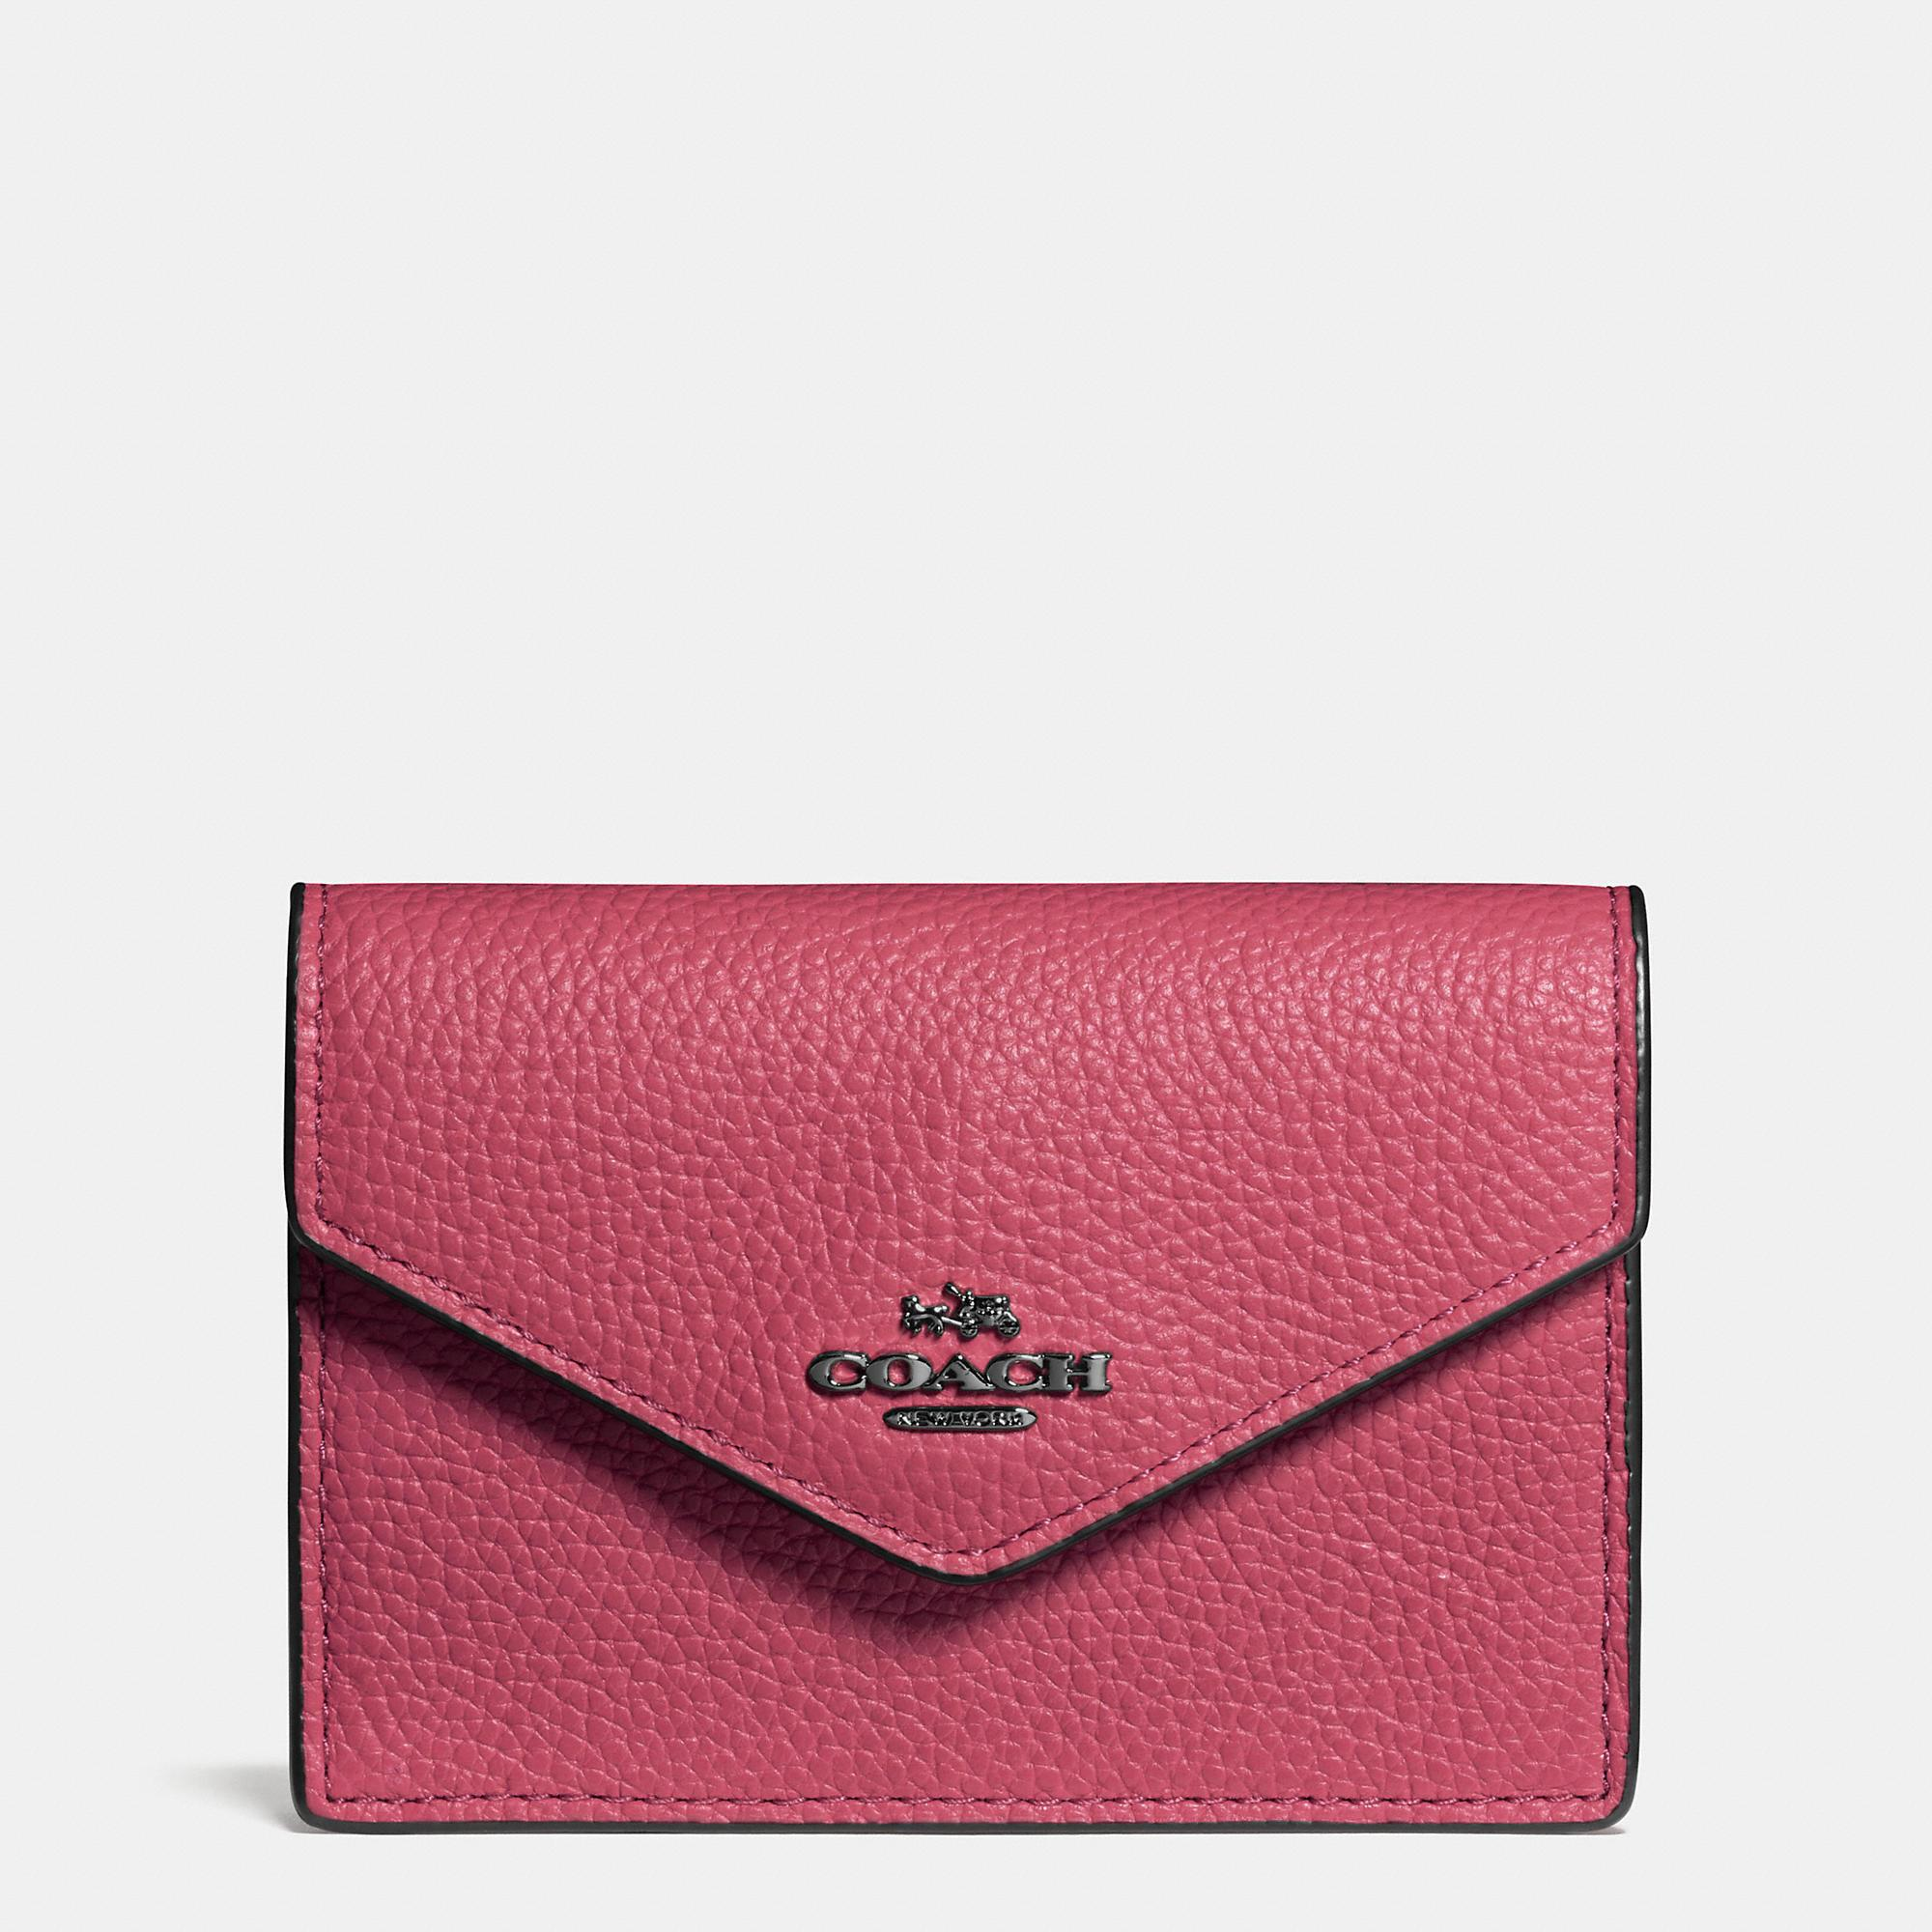 9366eece8d07 Lyst - COACH Envelope Card Case In Polished Pebble Leather